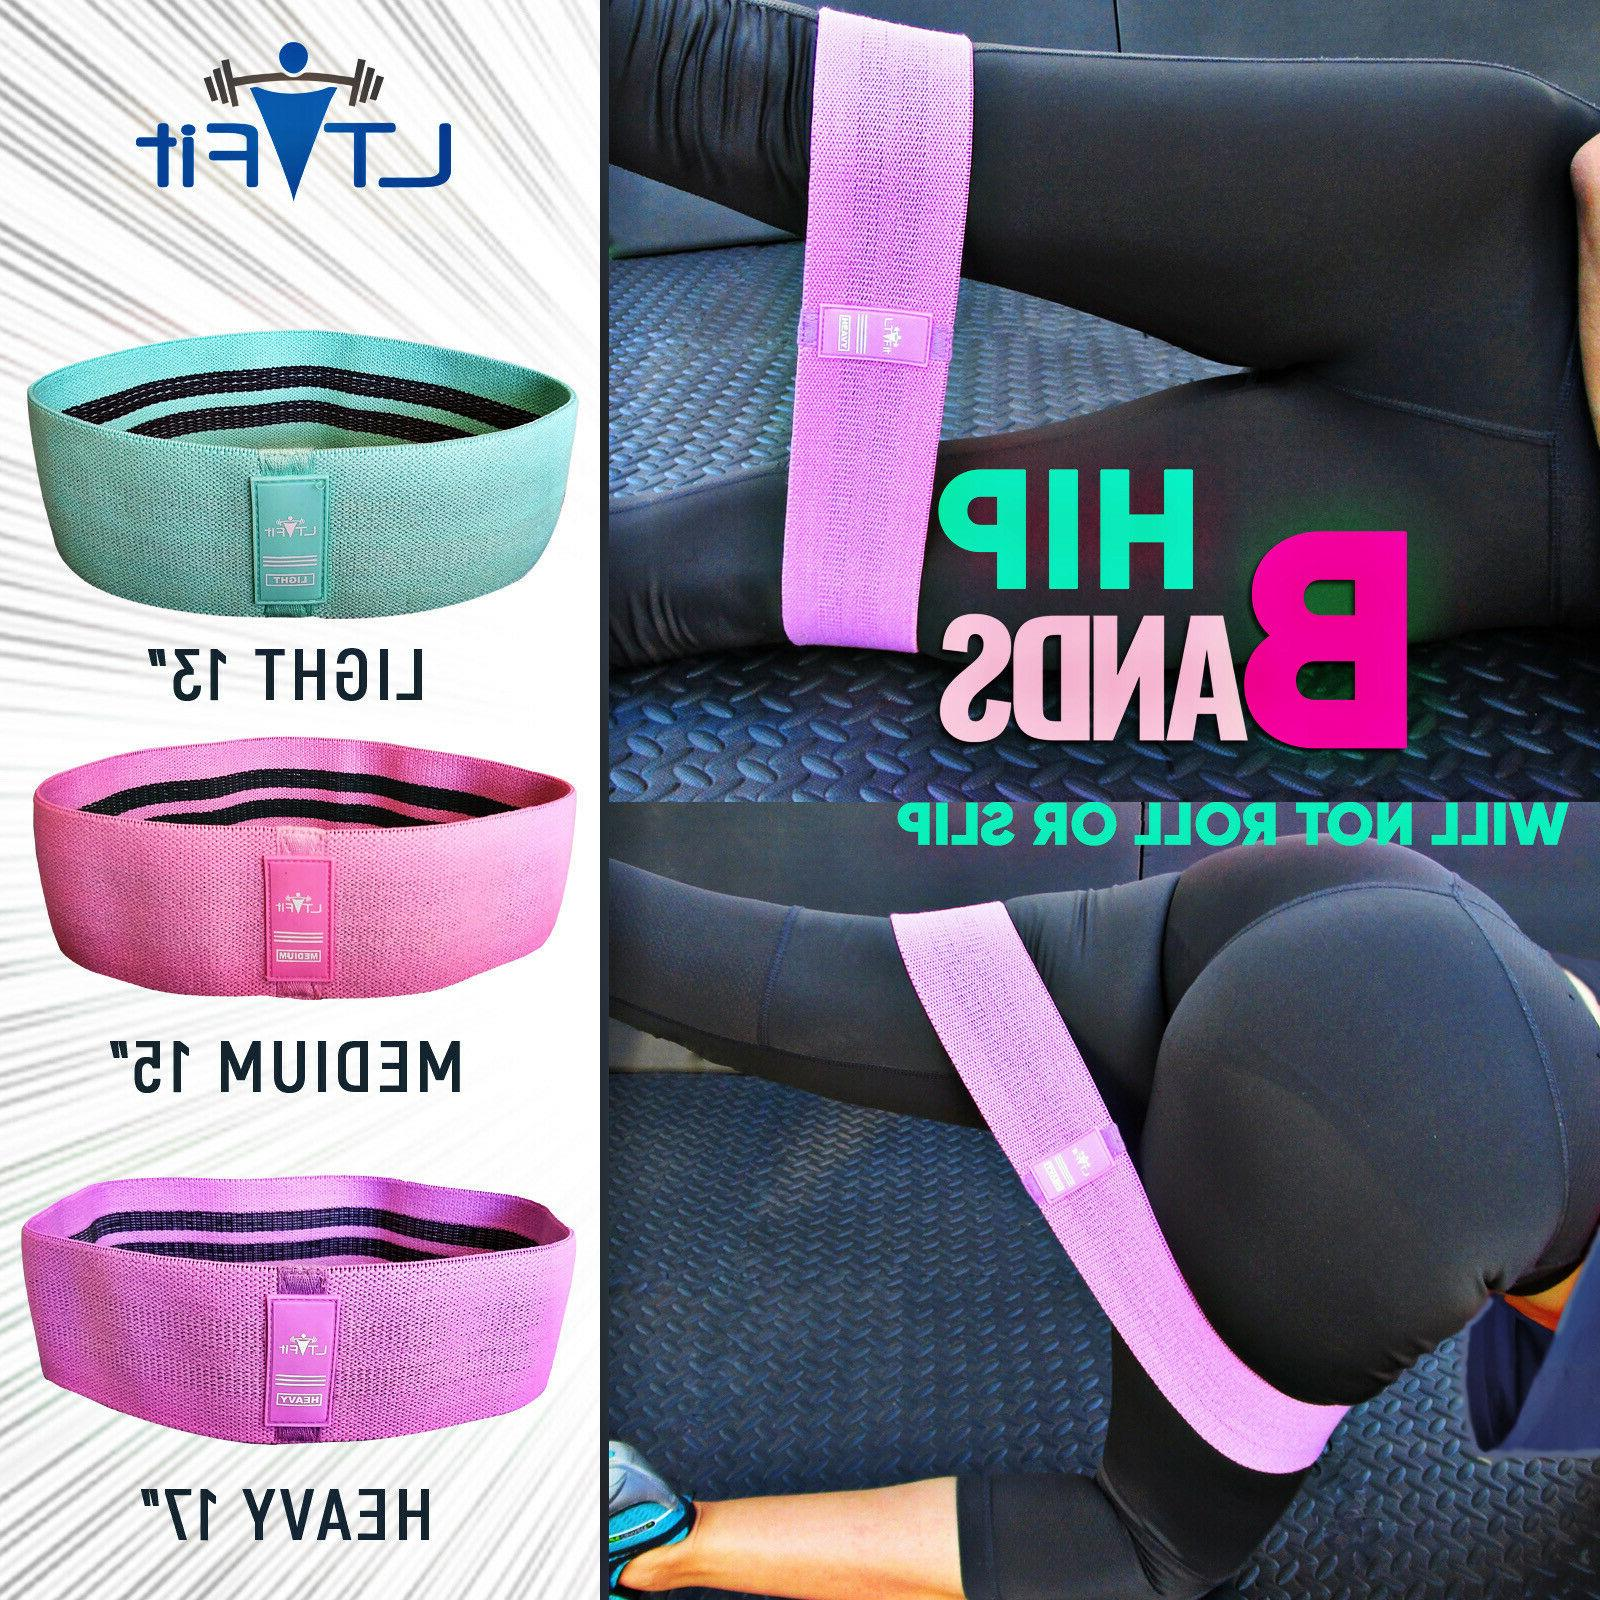 cloth fabric resistance hip booty bands loop